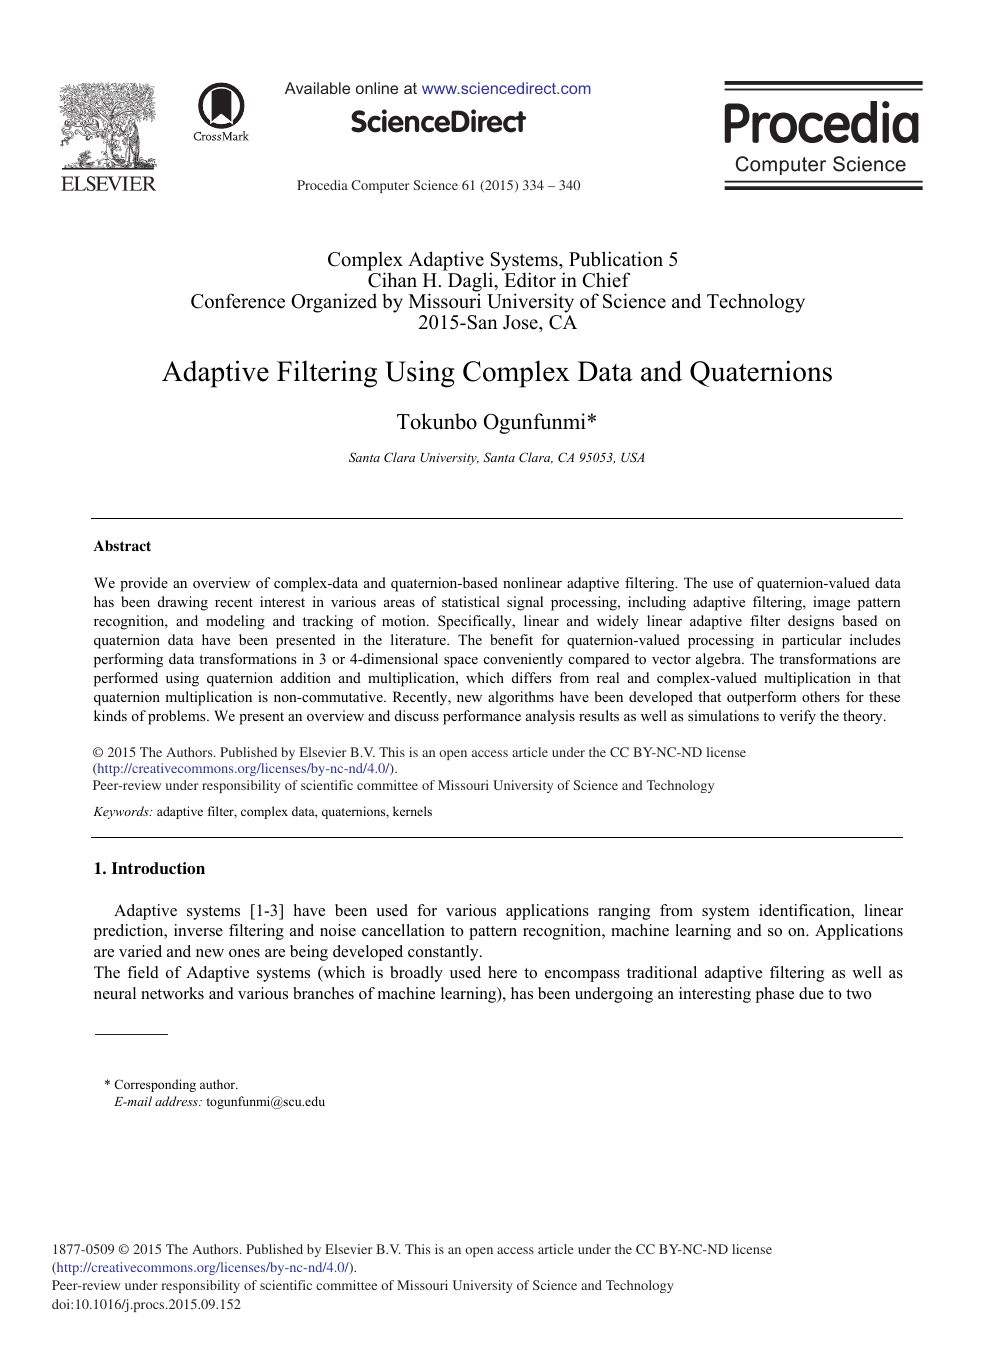 Adaptive Filtering Using Complex Data and Quaternions